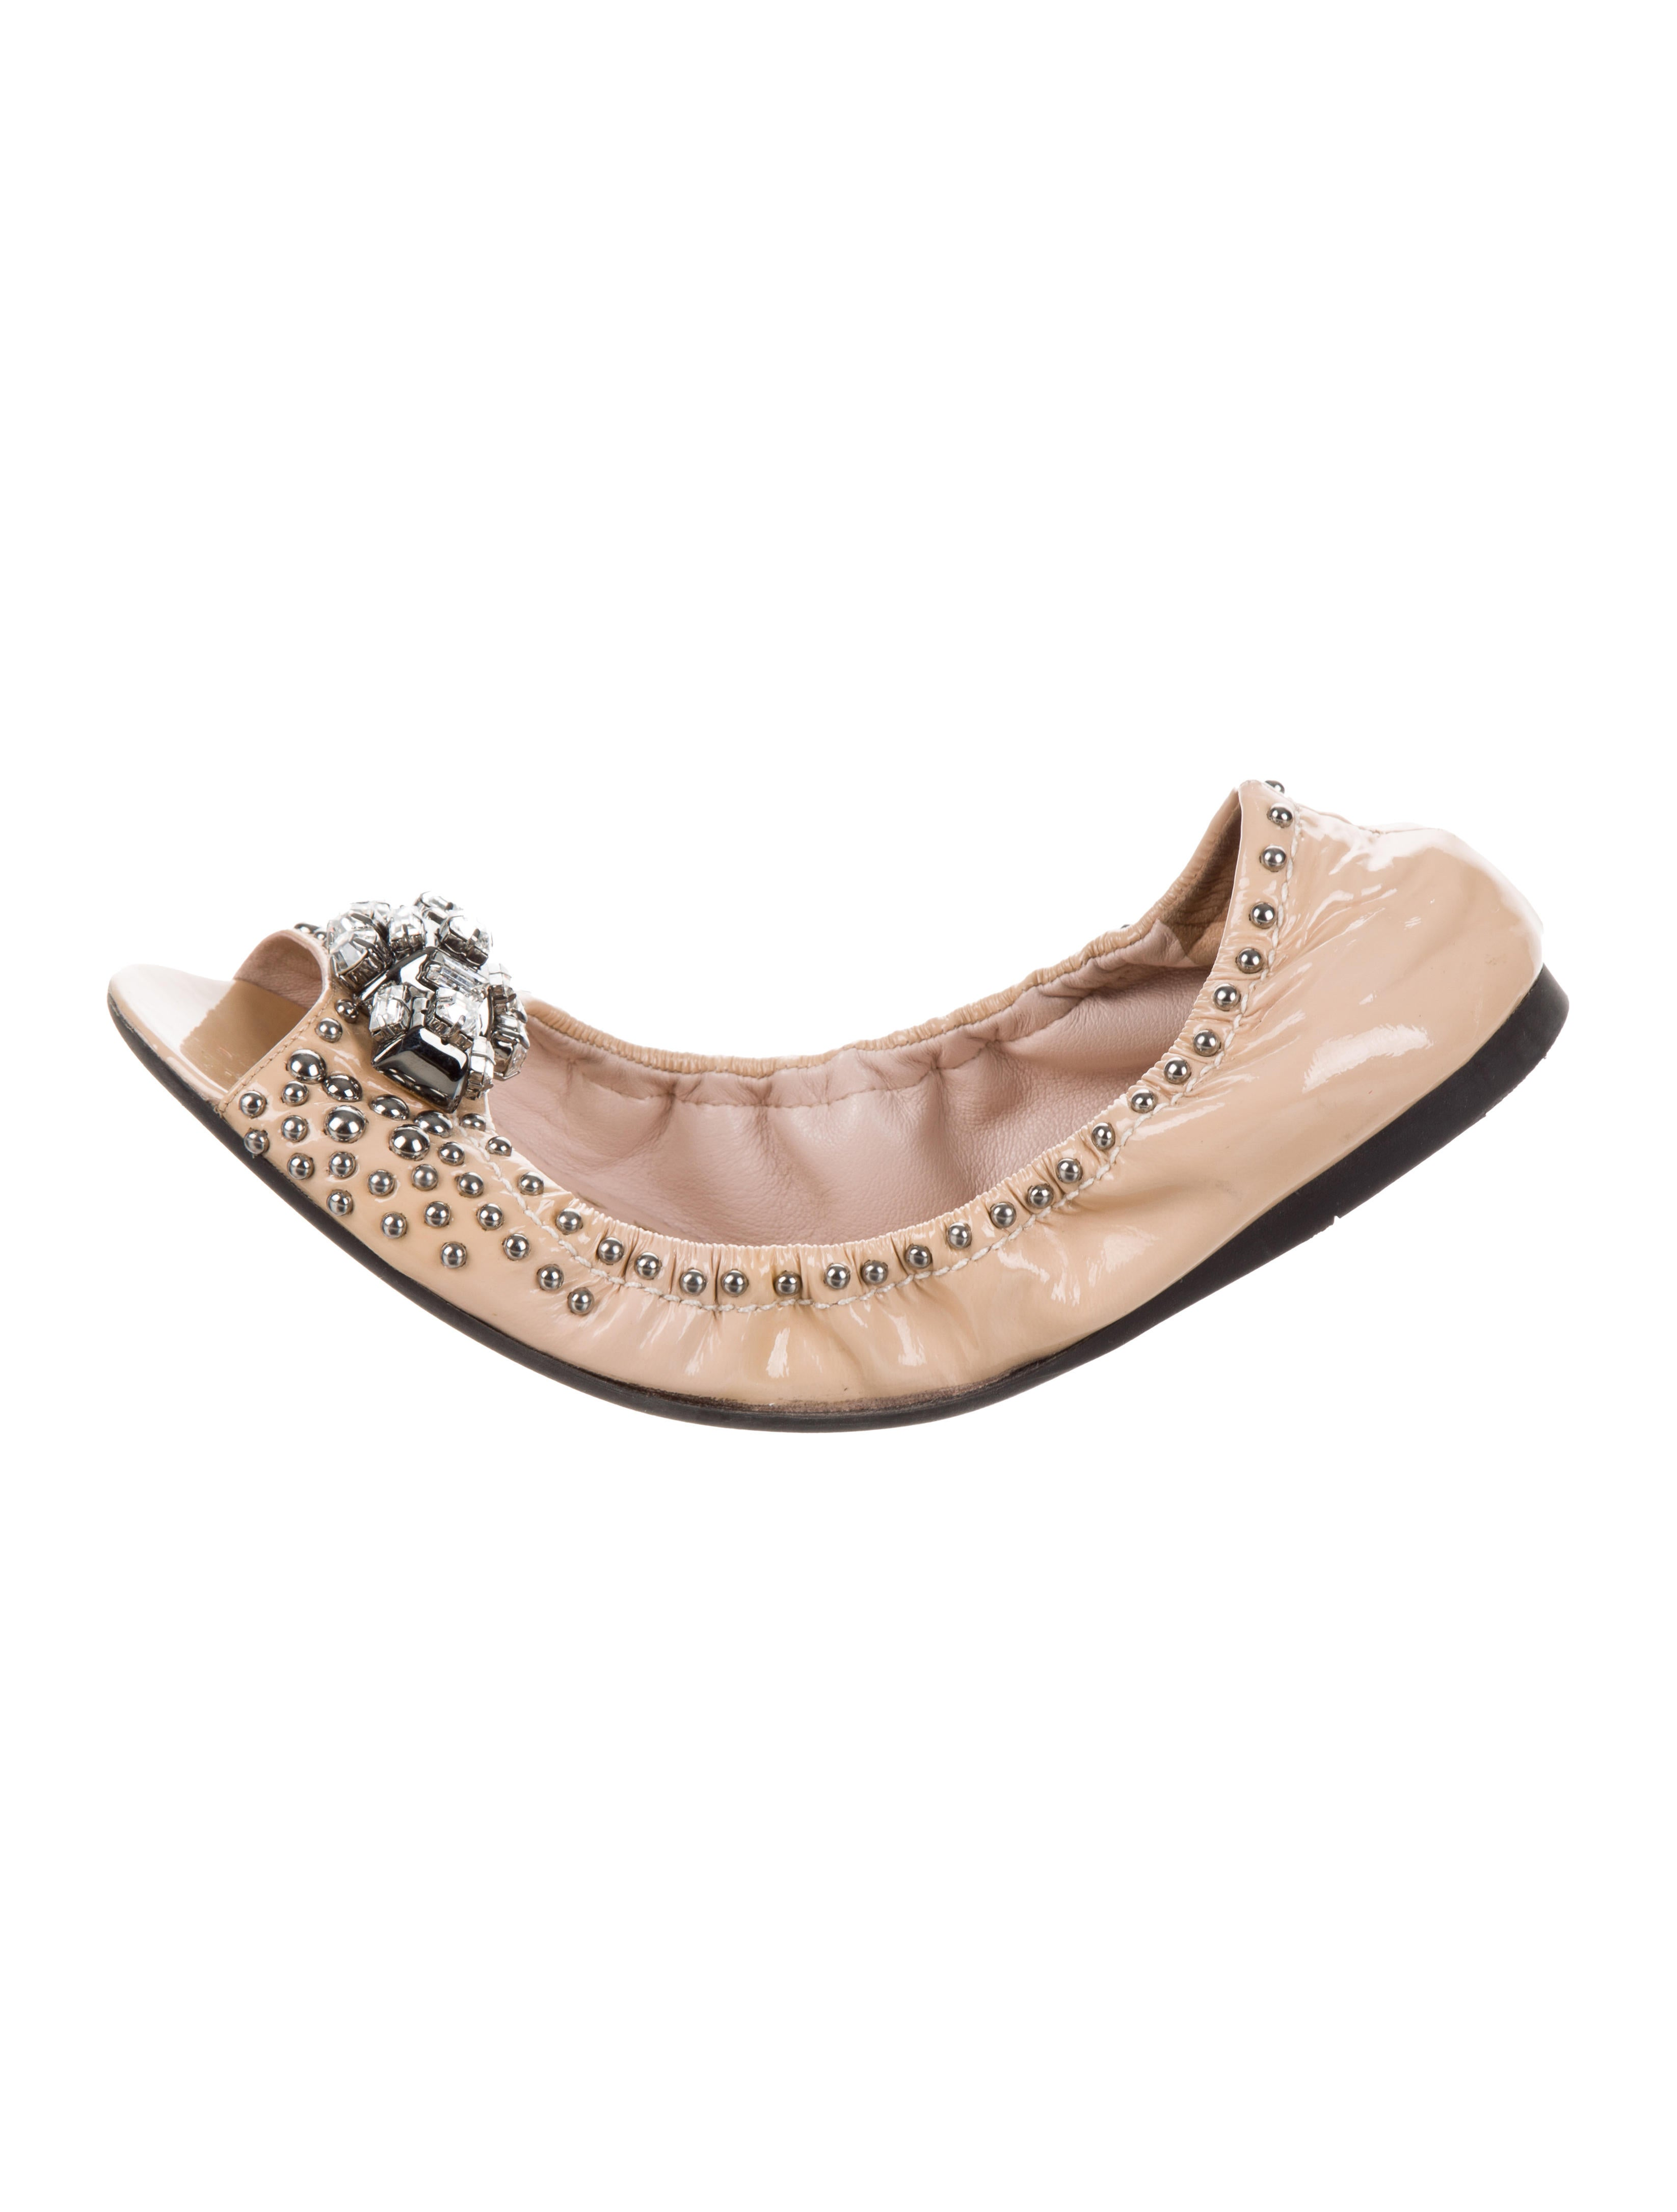 Miu Miu Embellished Peep-Toe Flats outlet extremely buy cheap 100% guaranteed outlet store Locations under $60 outlet pay with visa U4Vf5zw